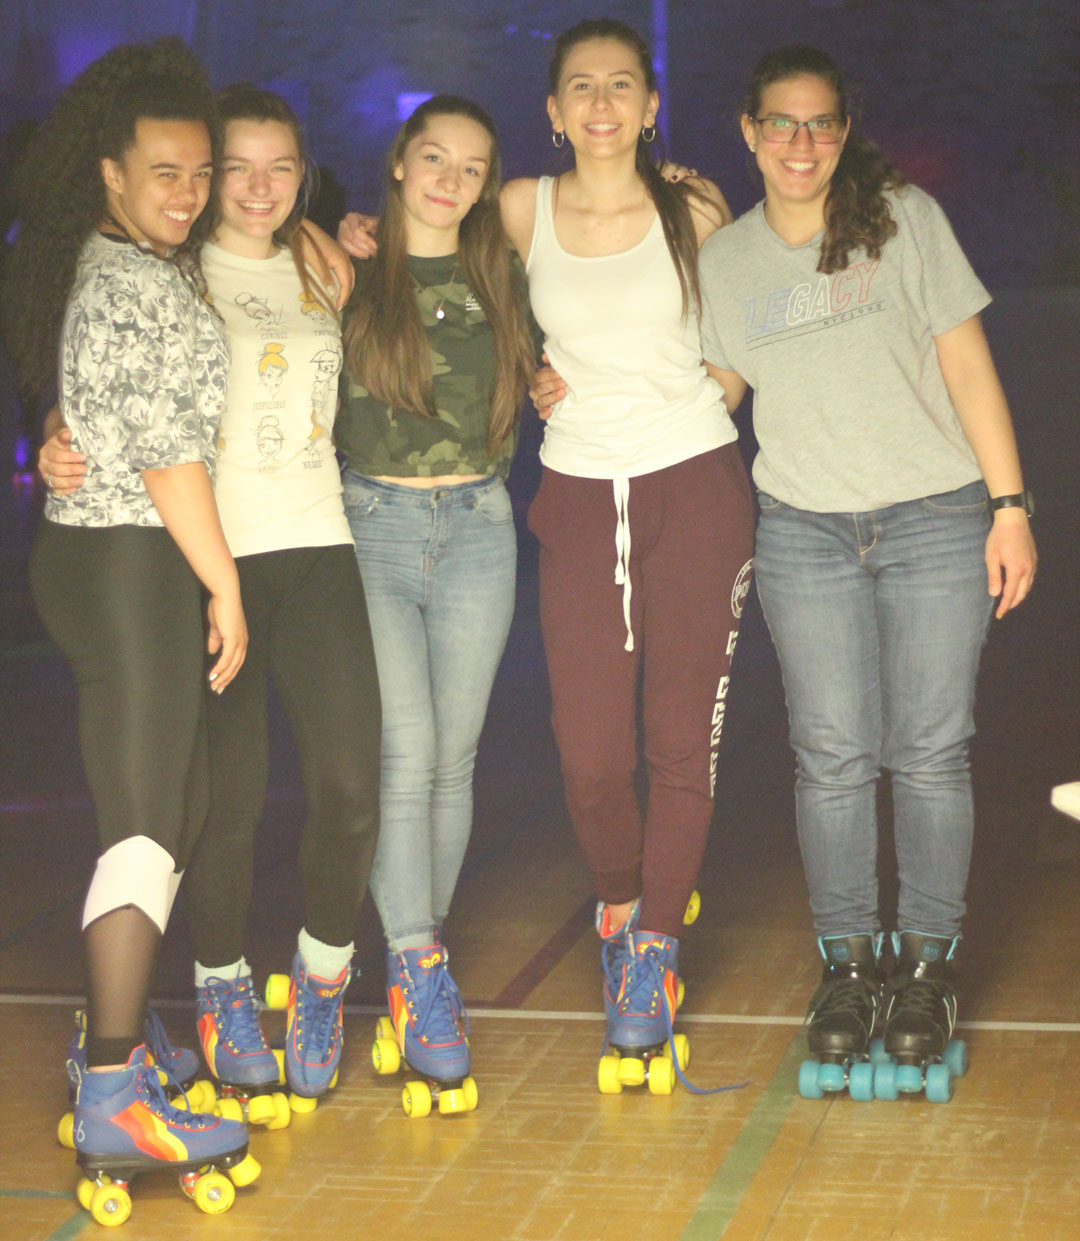 roller disco aoc thisgirlcan students2019